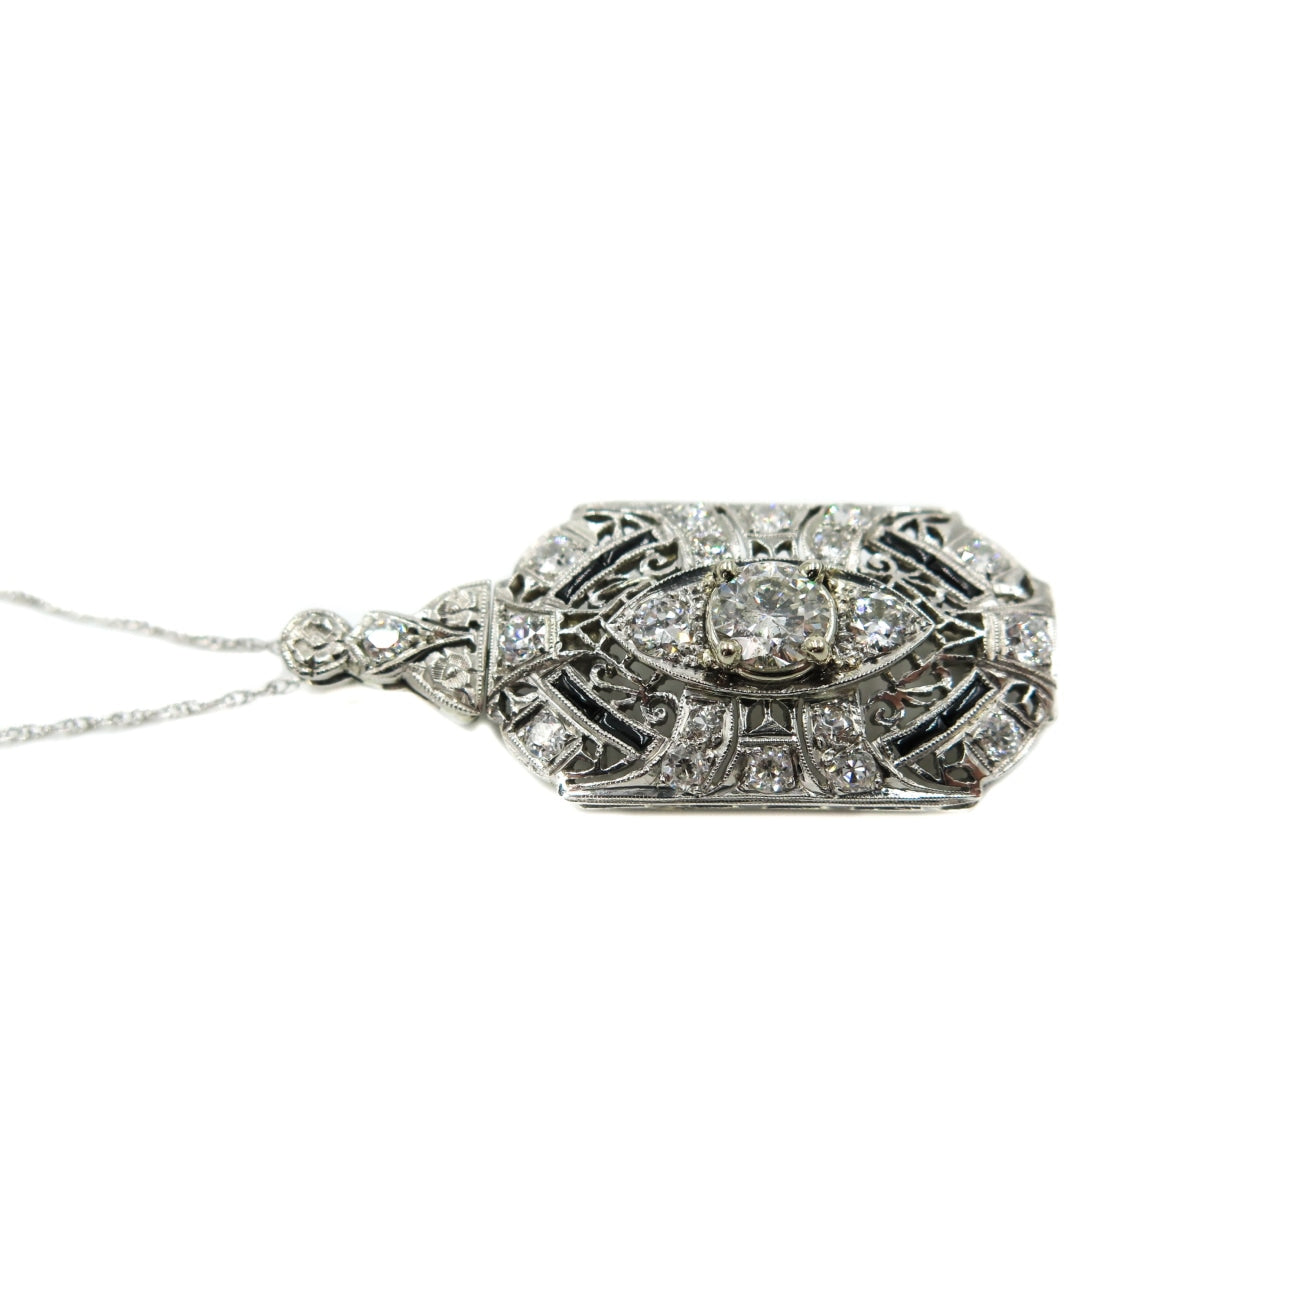 Estate Jewelry Estate Jewelry - Art Deco Pendant or Brooch | Manfredi Jewels